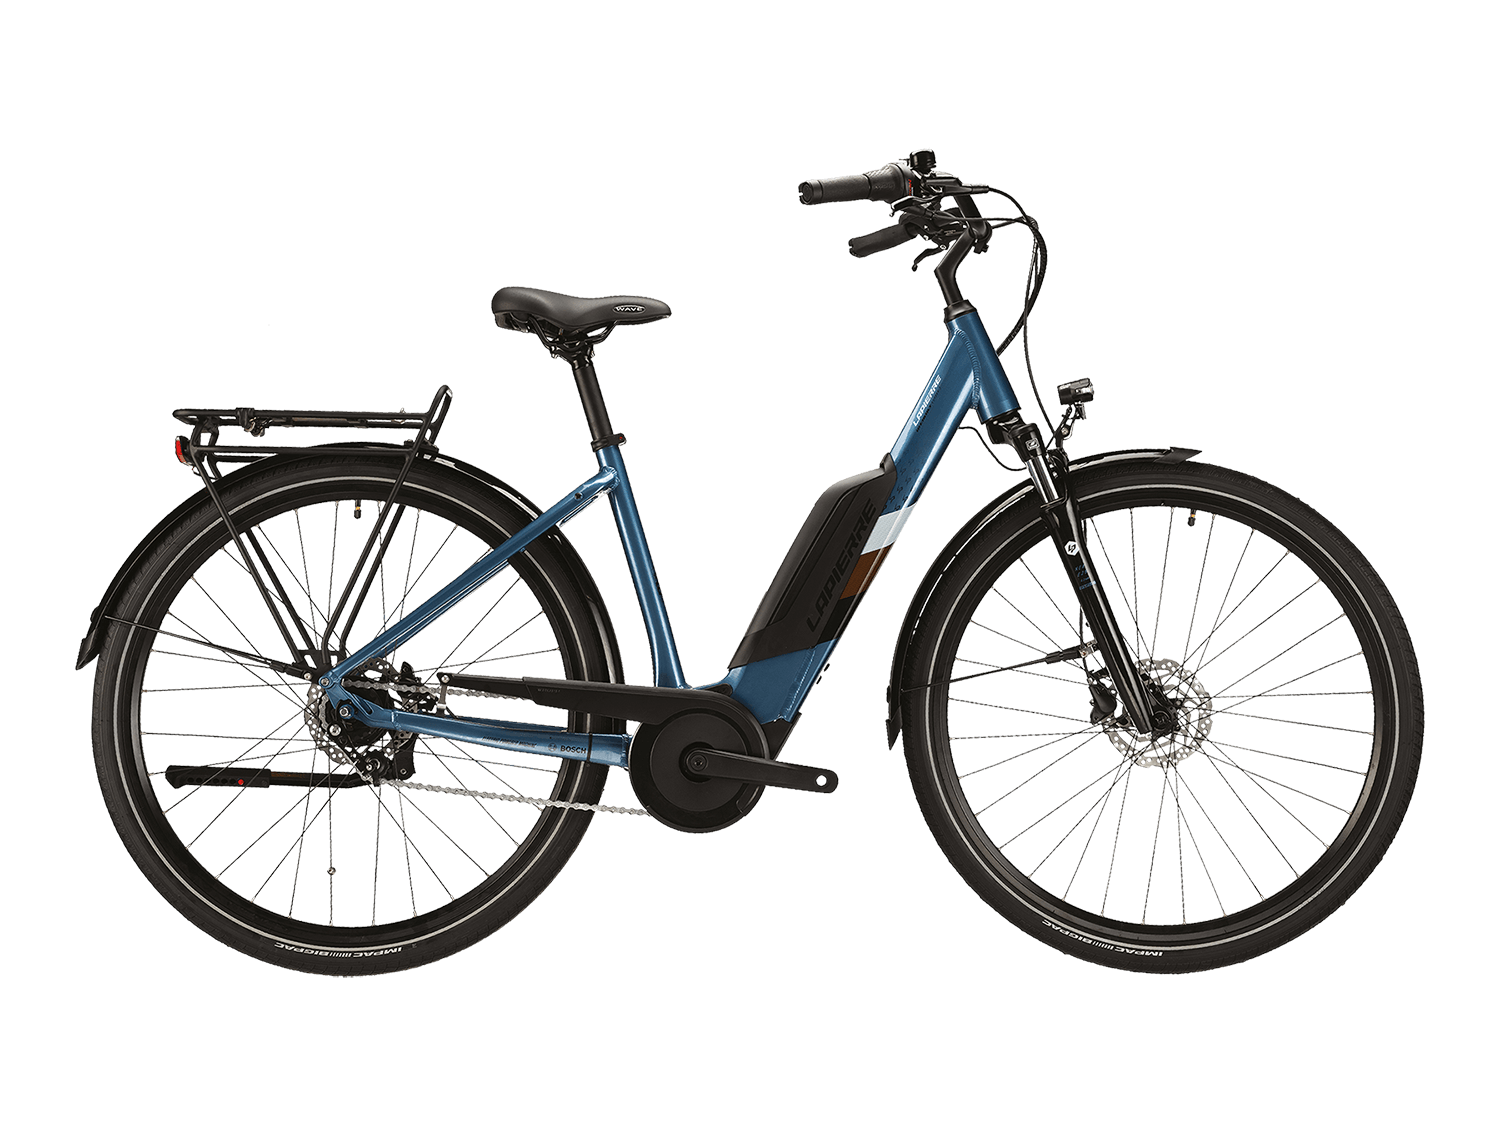 Lapierre Overvolt Urban 3.4 N 2021 Electric Urban Bike